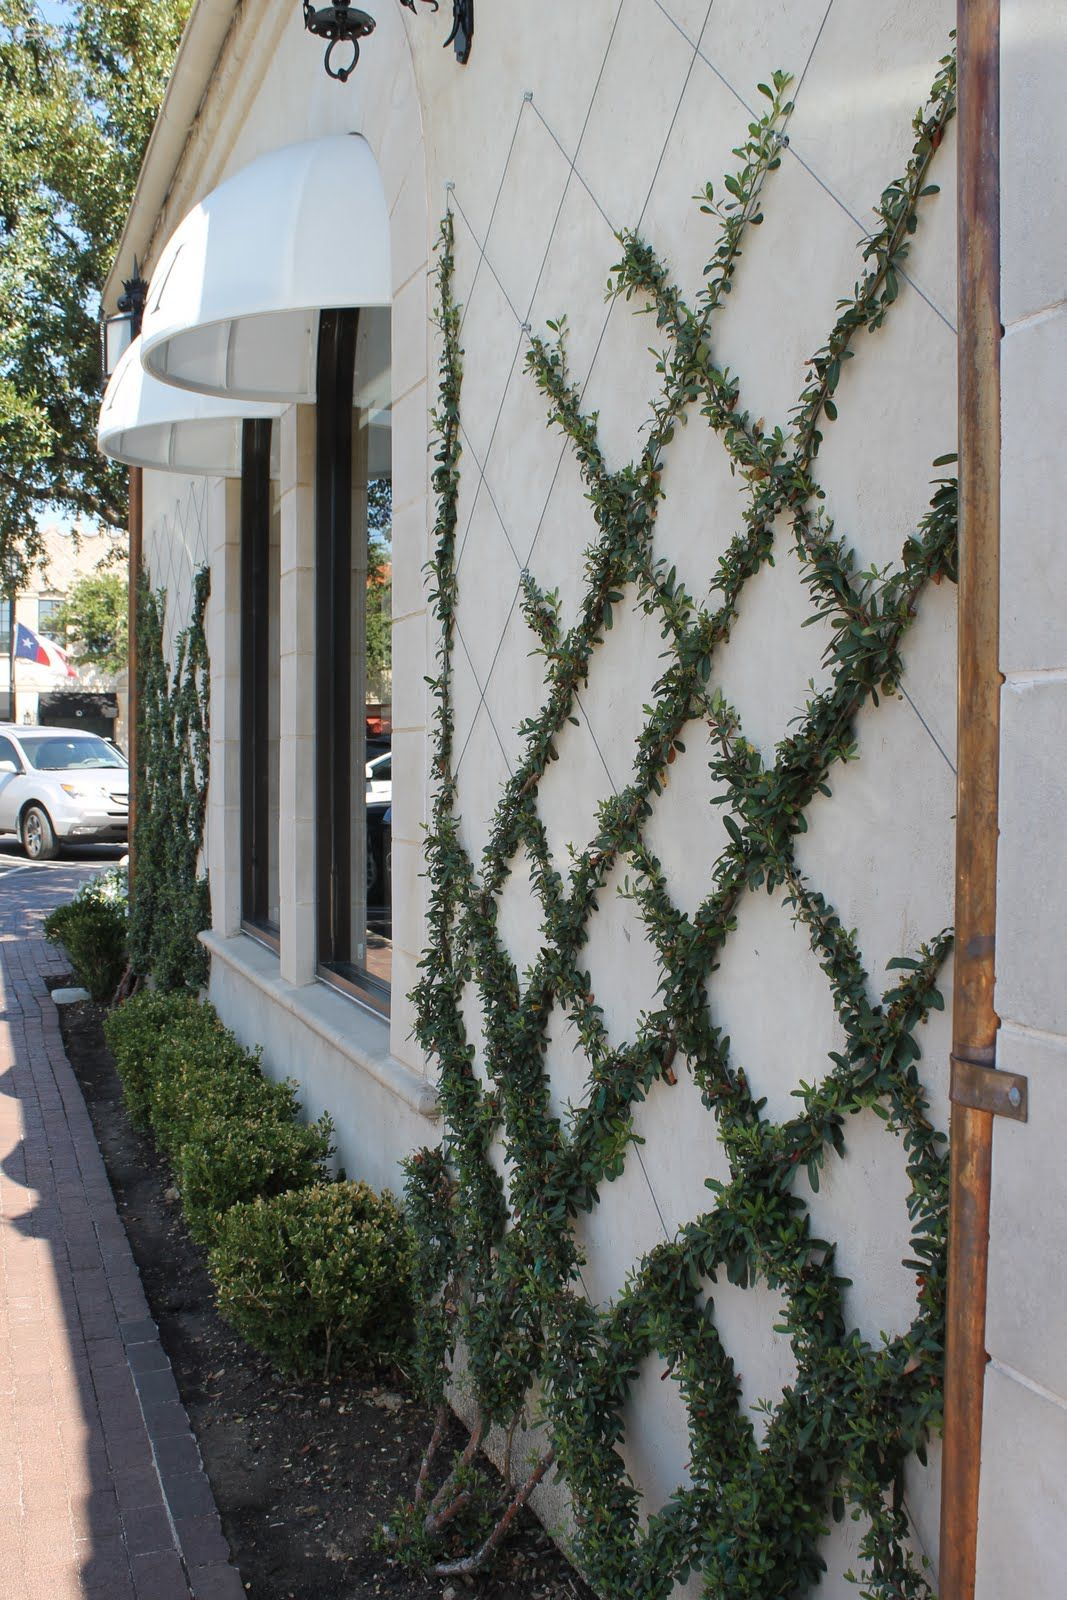 criss cross some wires or thread against the side of the house for a ...